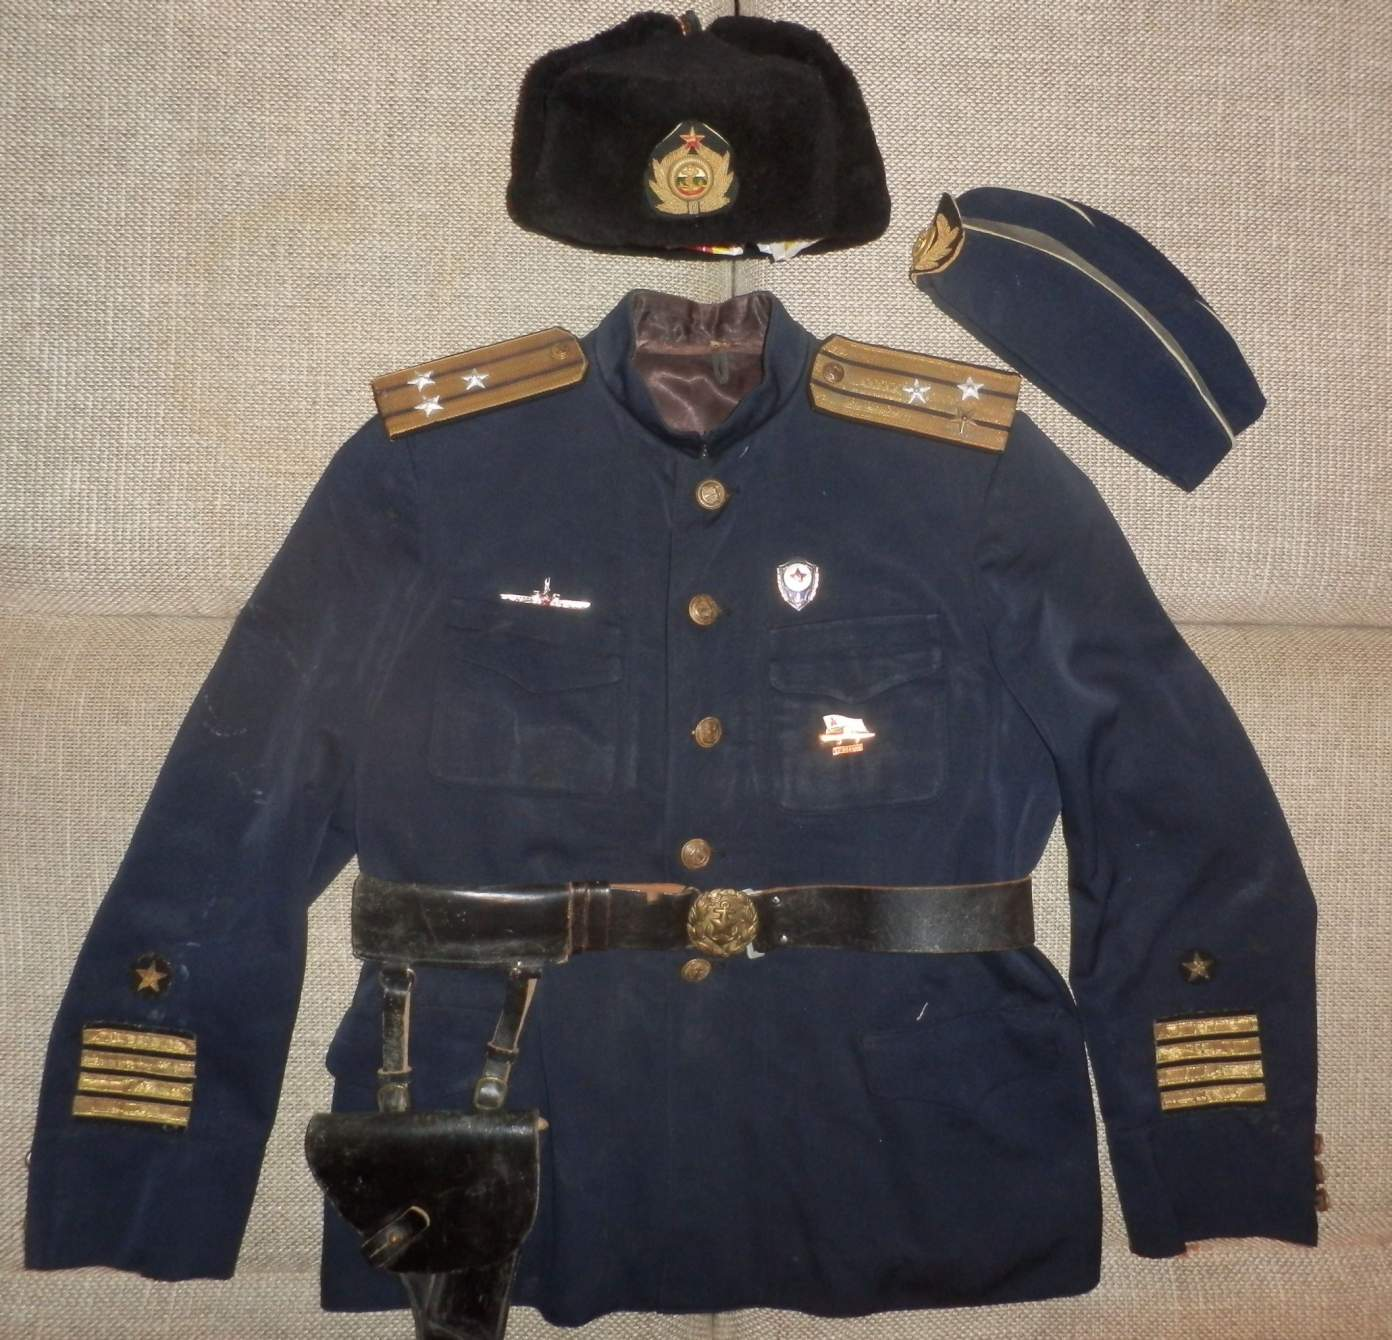 Submarine Uniform 120